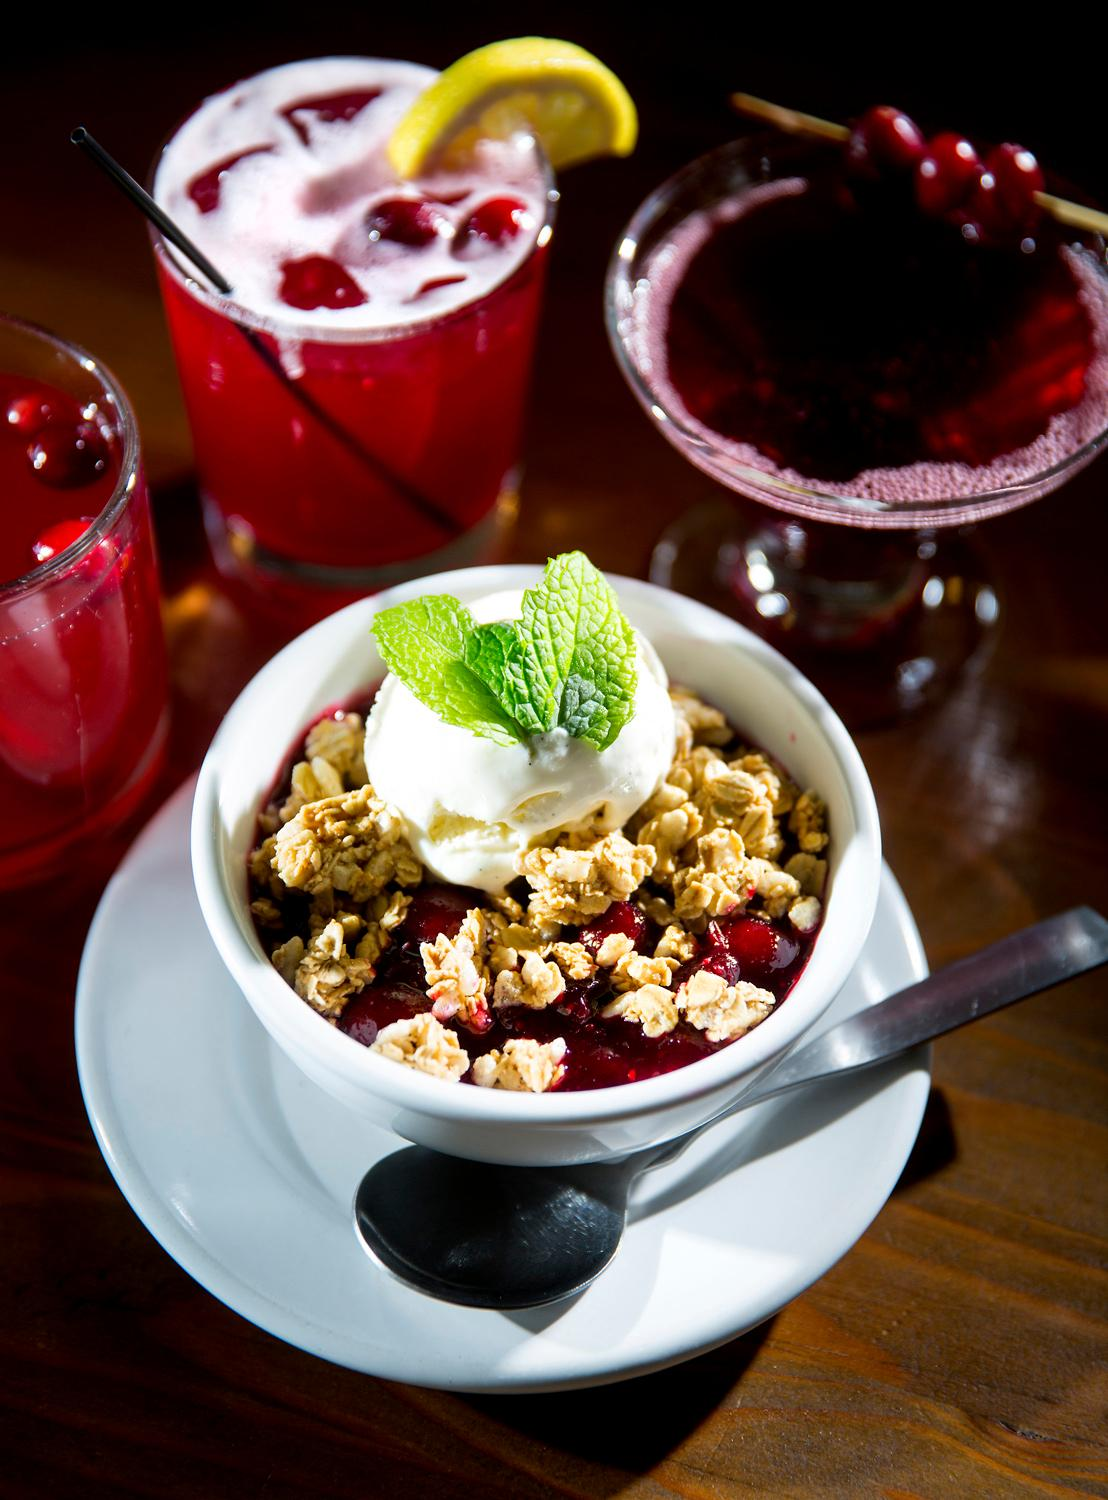 The cranberry citrus and vanilla bean cobbler with Tillamook ice cream and granola crumbs at the Salt Hotel and Pub, located at 147 Howerton Ave, Ilwaco, WA. (Sy Bean / Seattle Refined)